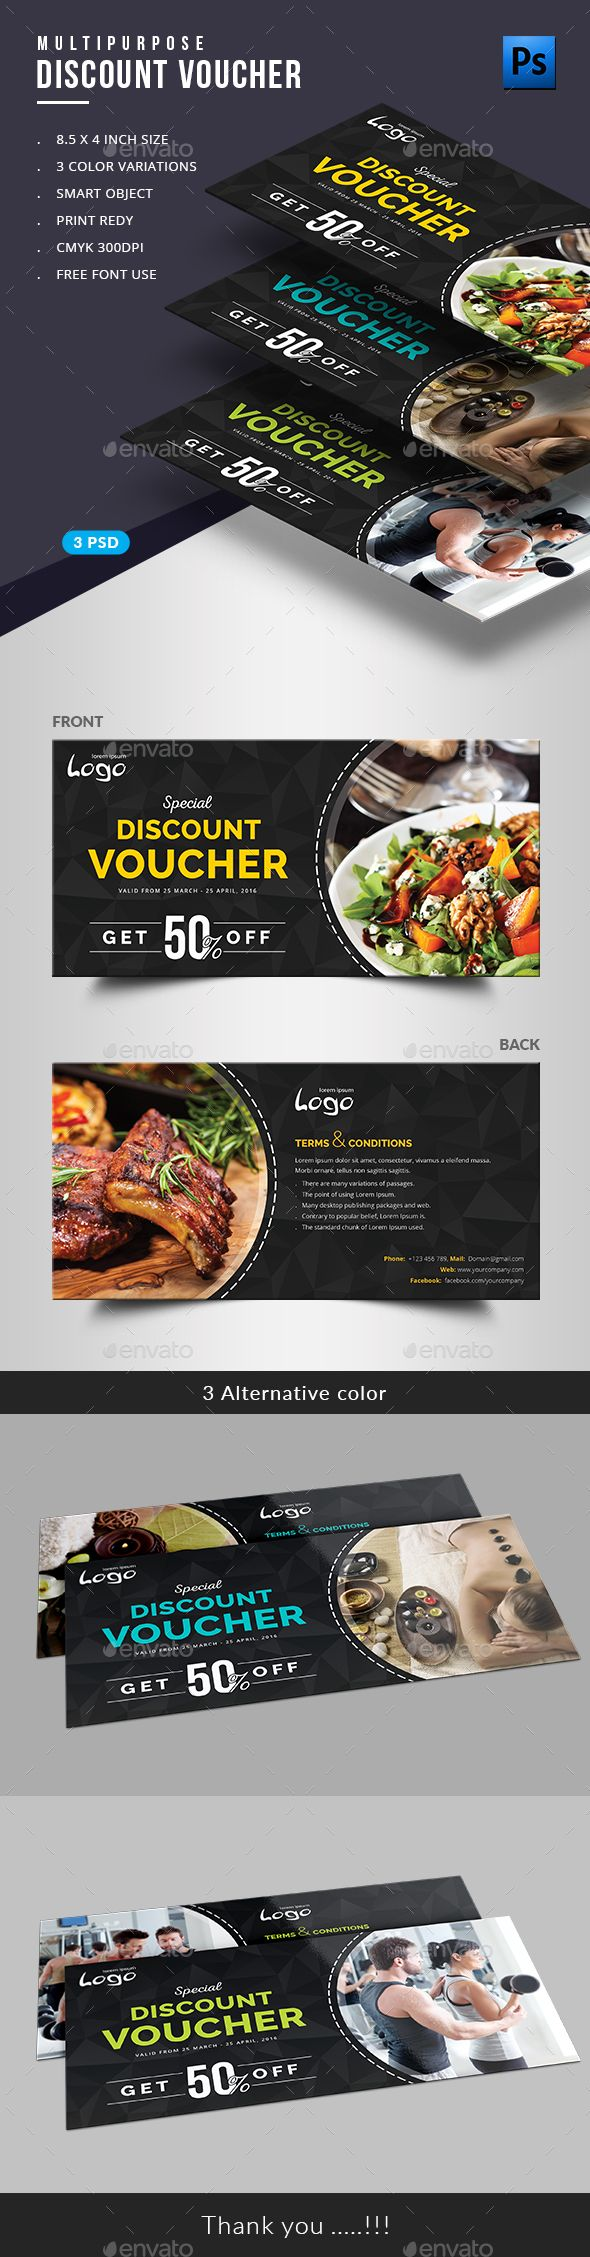 Gift Voucher  Loyalty Cards Card Templates And Template